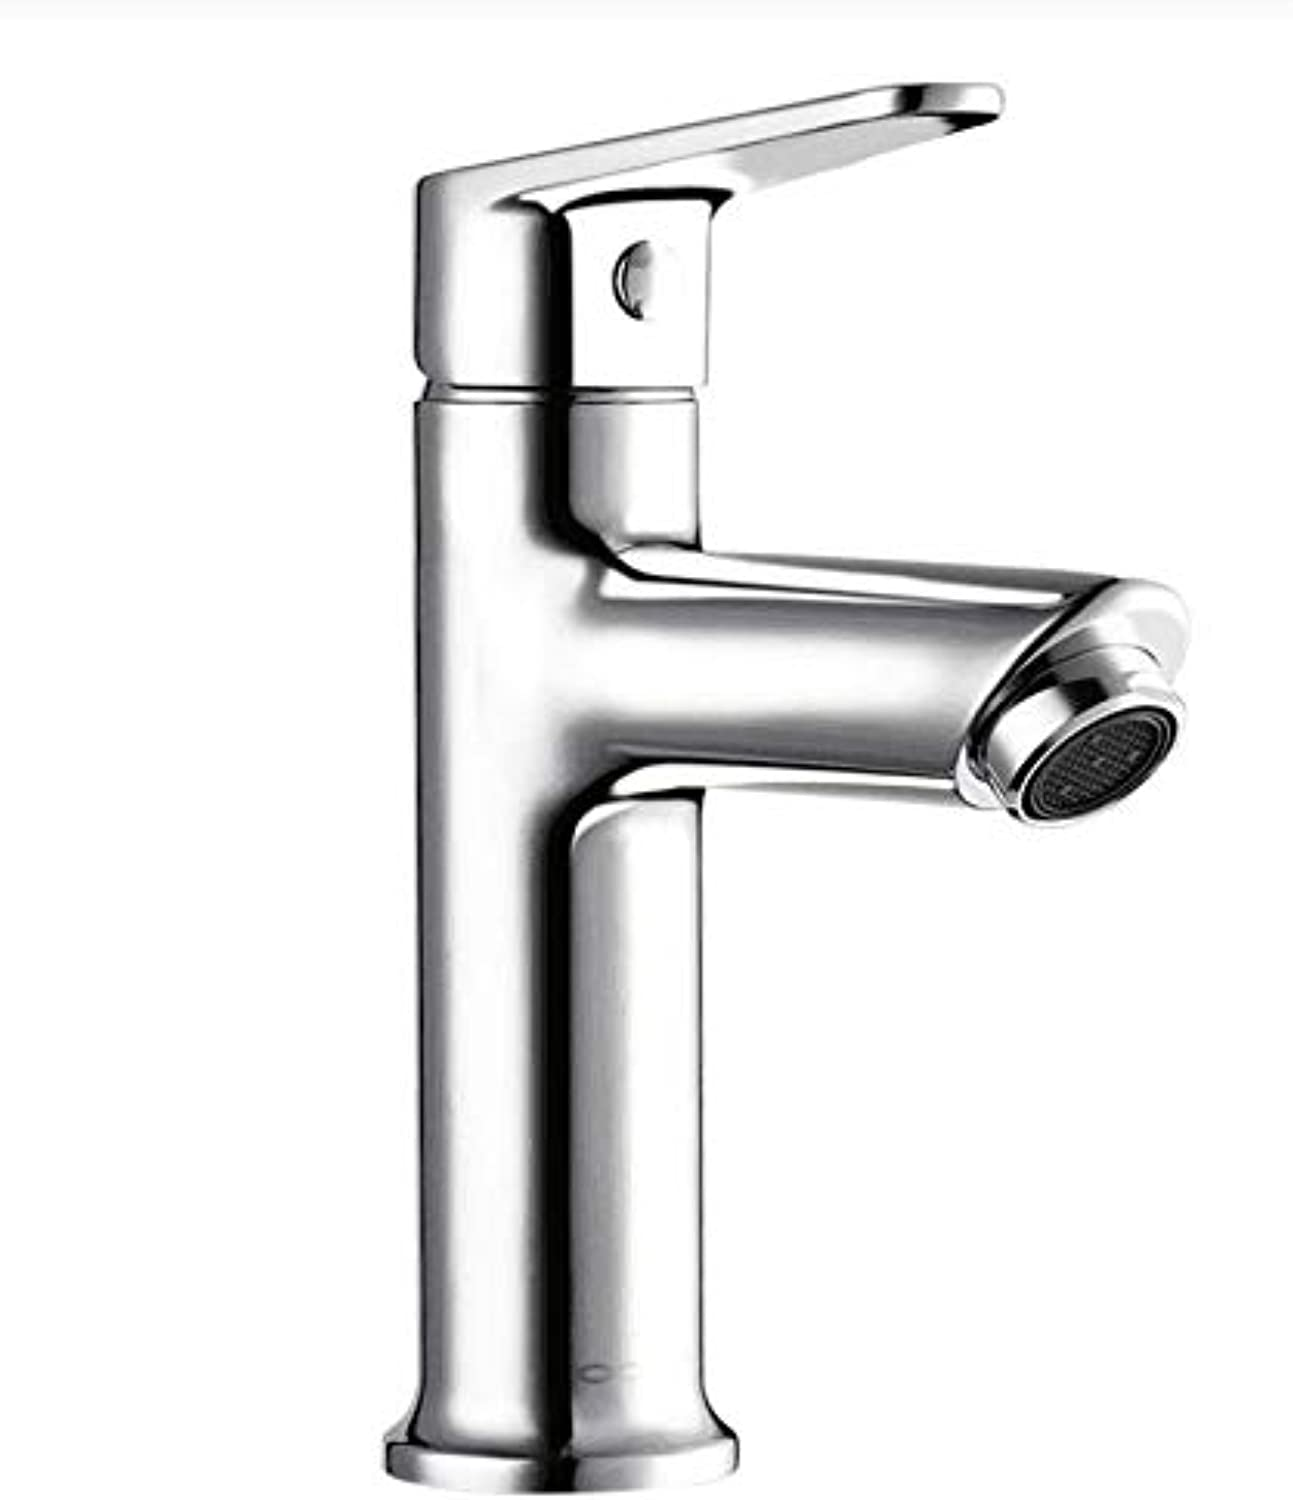 Faucerd Washing Basin, Washbasin, Washbasin, Balcony, Bathroom, Household Kitchen Faucet, Faucet, Faucet, Hot And Cold,32267 Basin Faucetquality Assurance Of Modern And Simple Classic Retro Luxury Home Decoration 828307